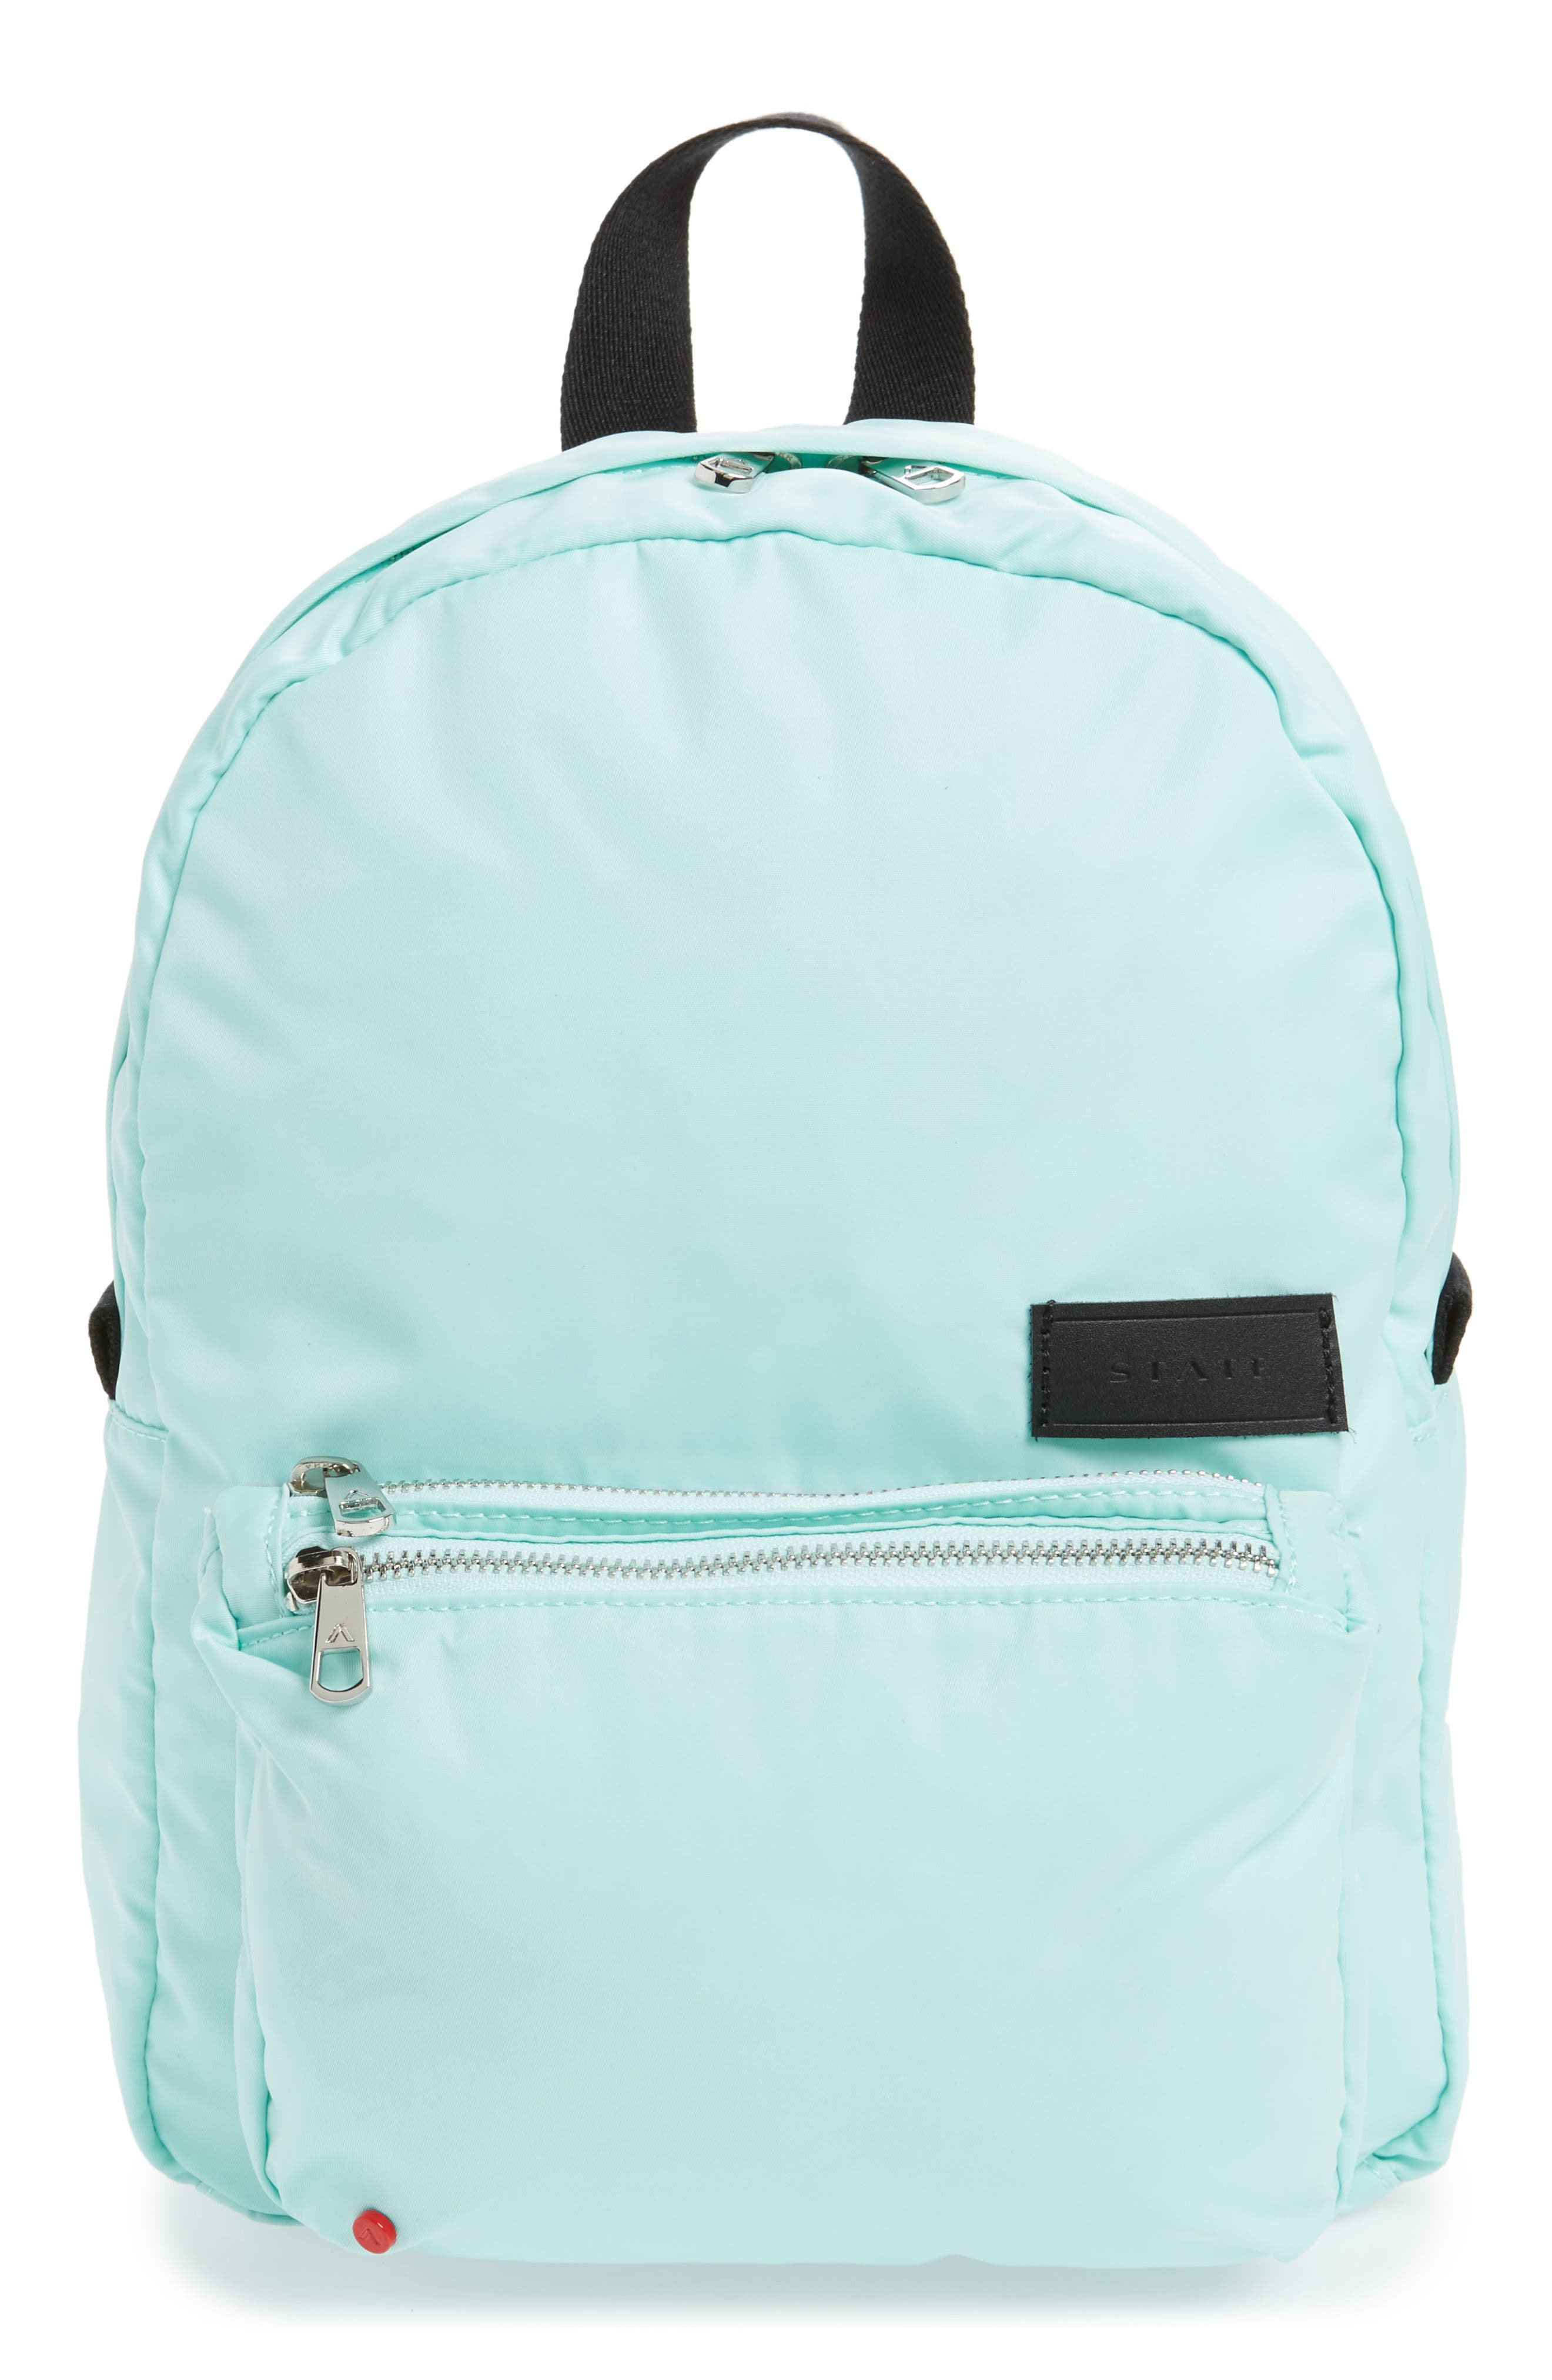 State THE HEIGHTS MINI LORIMER NYLON BACKPACK - BLUE